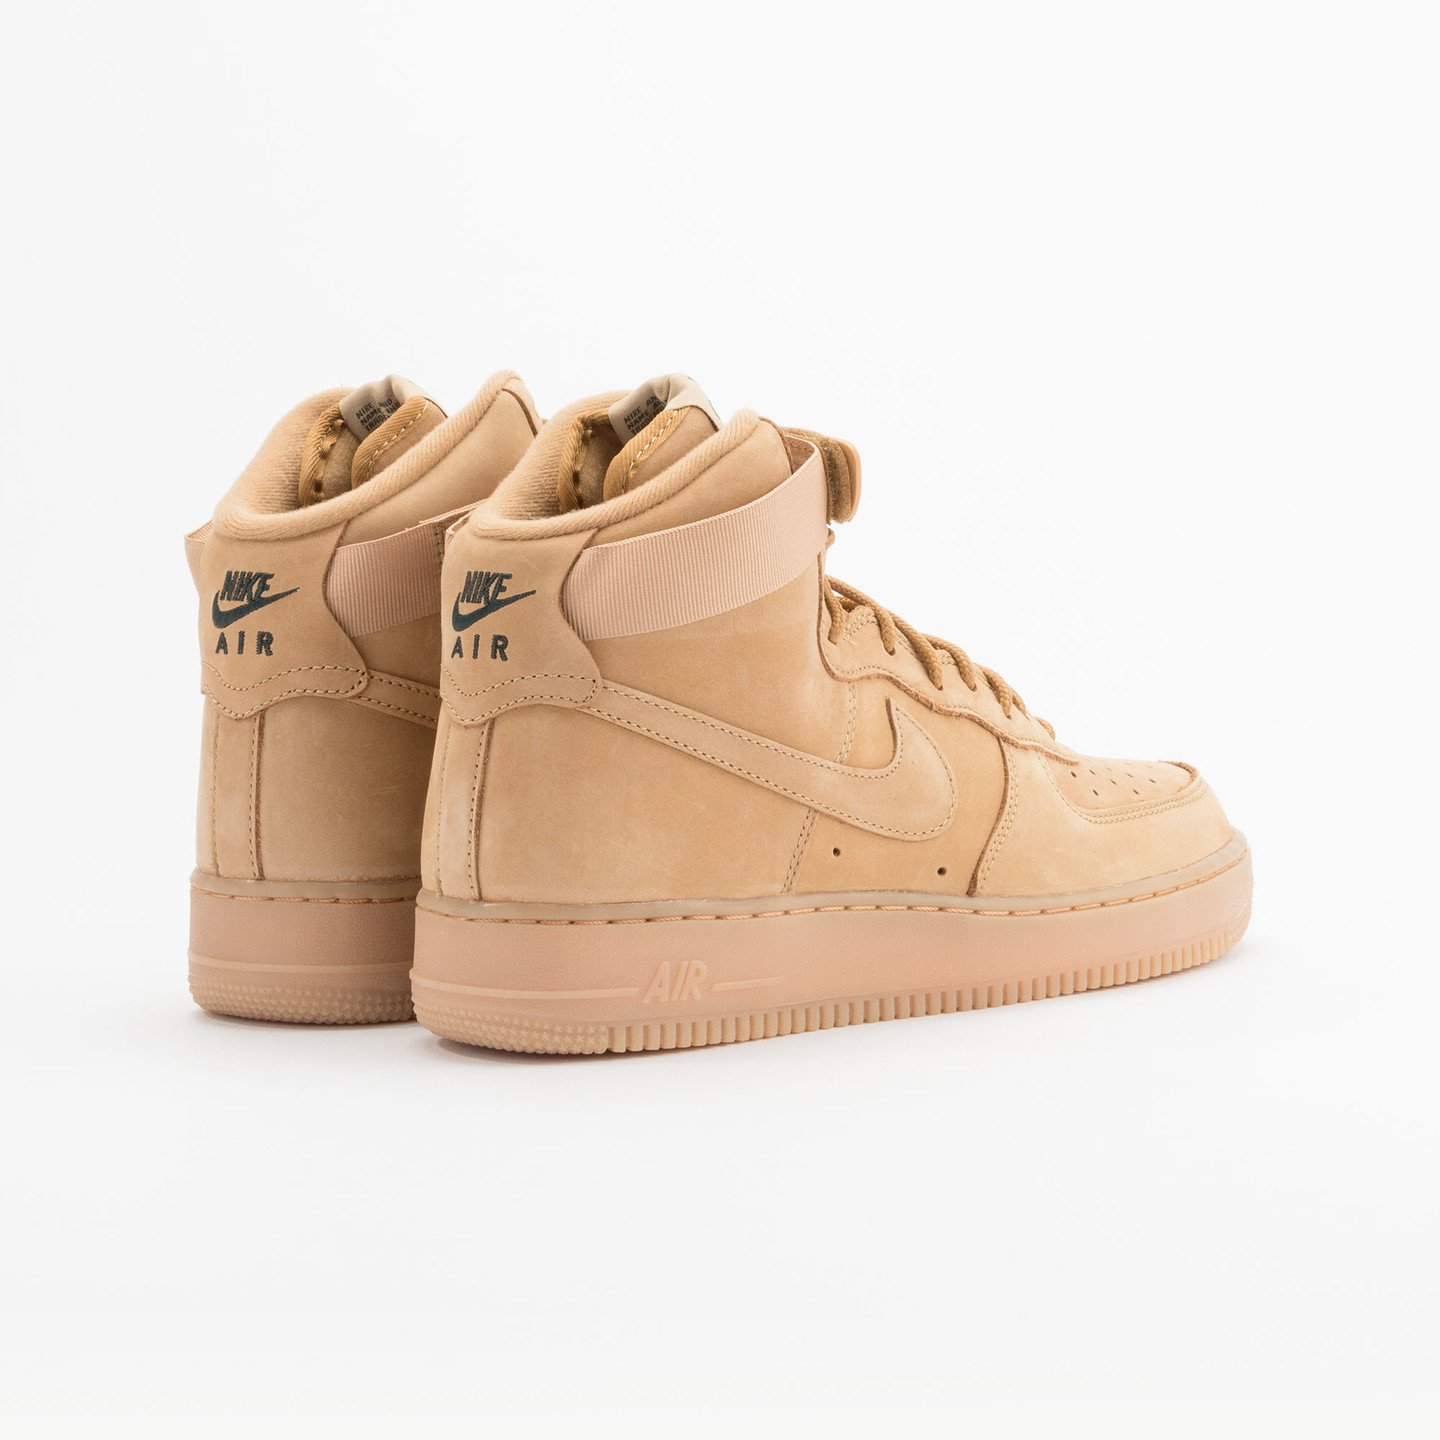 Nike Air Force 1 High ´07 LV8 Flax / Flax 806403-200-43